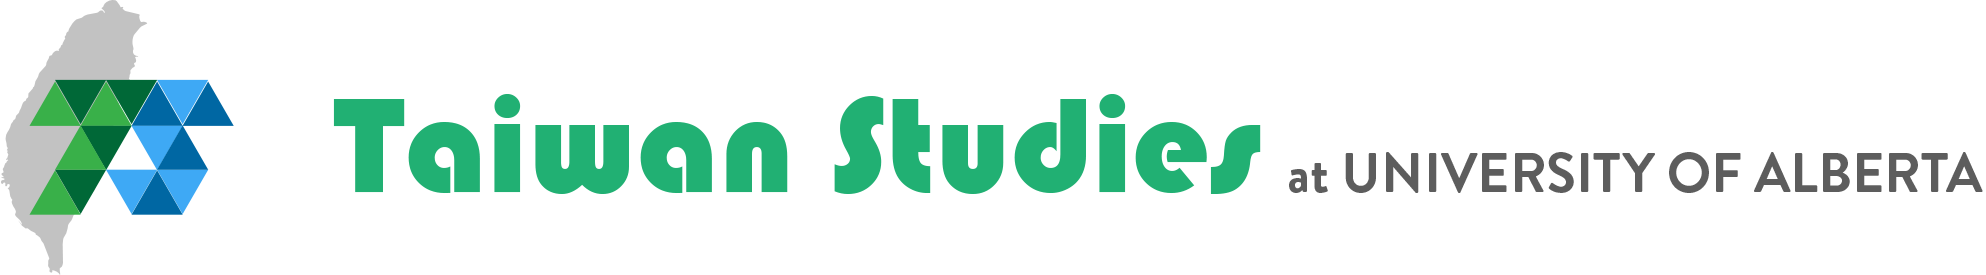 logo-with-title